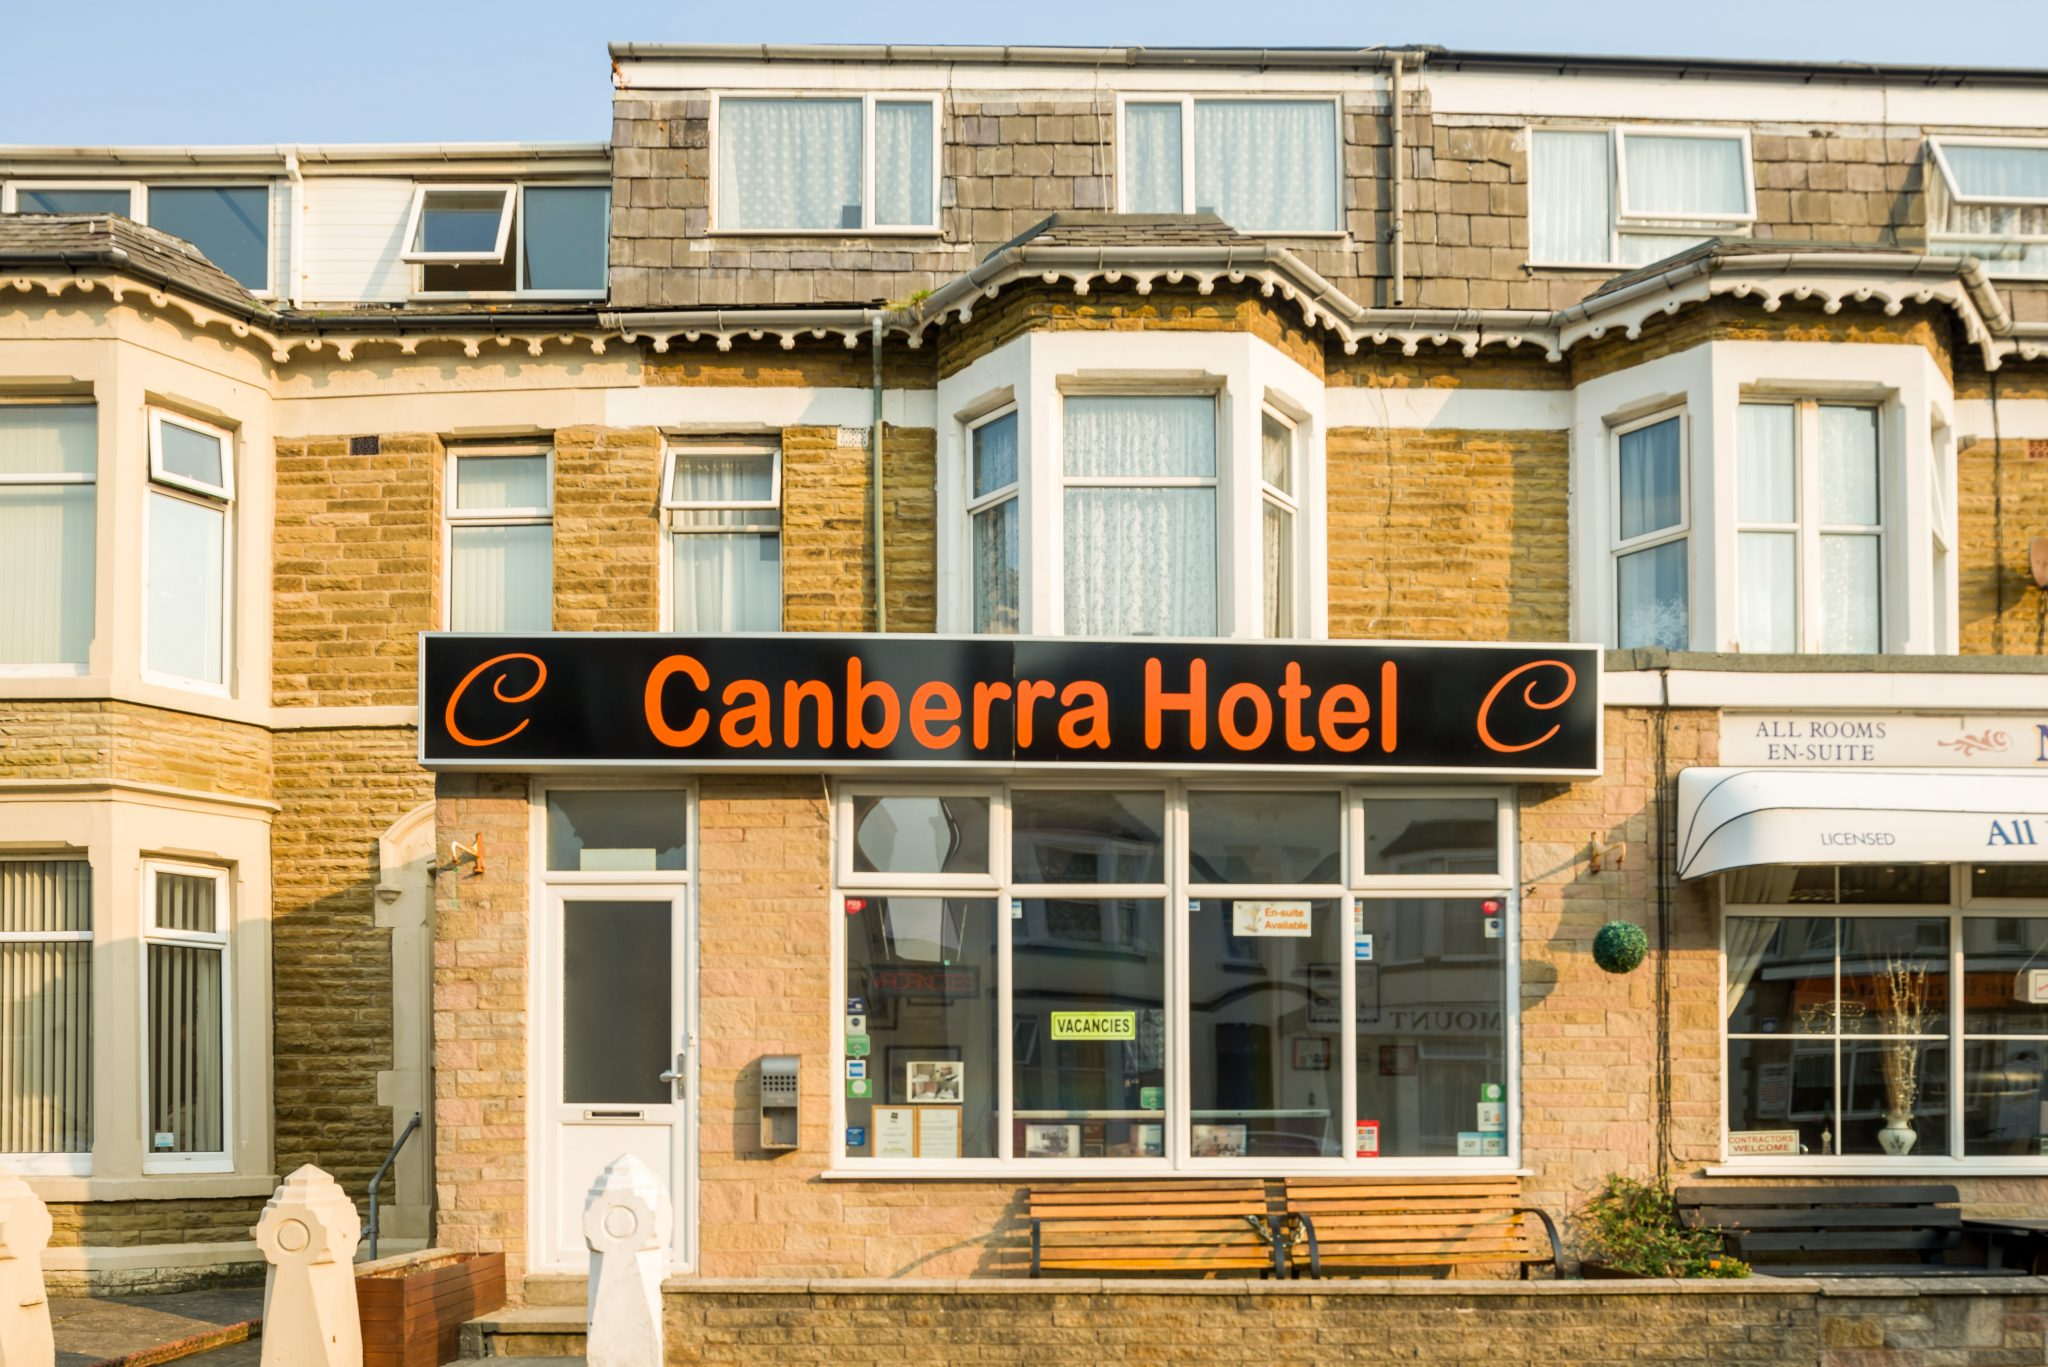 canberra hotel